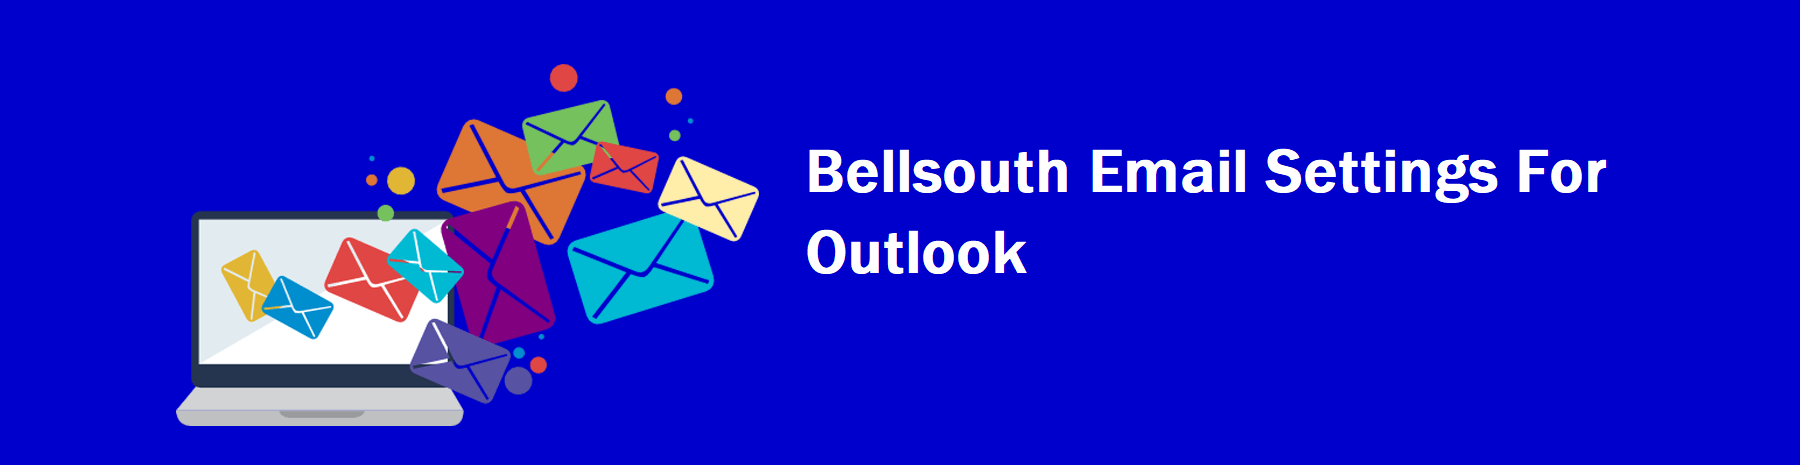 Bellsouth Email Settings Outlook